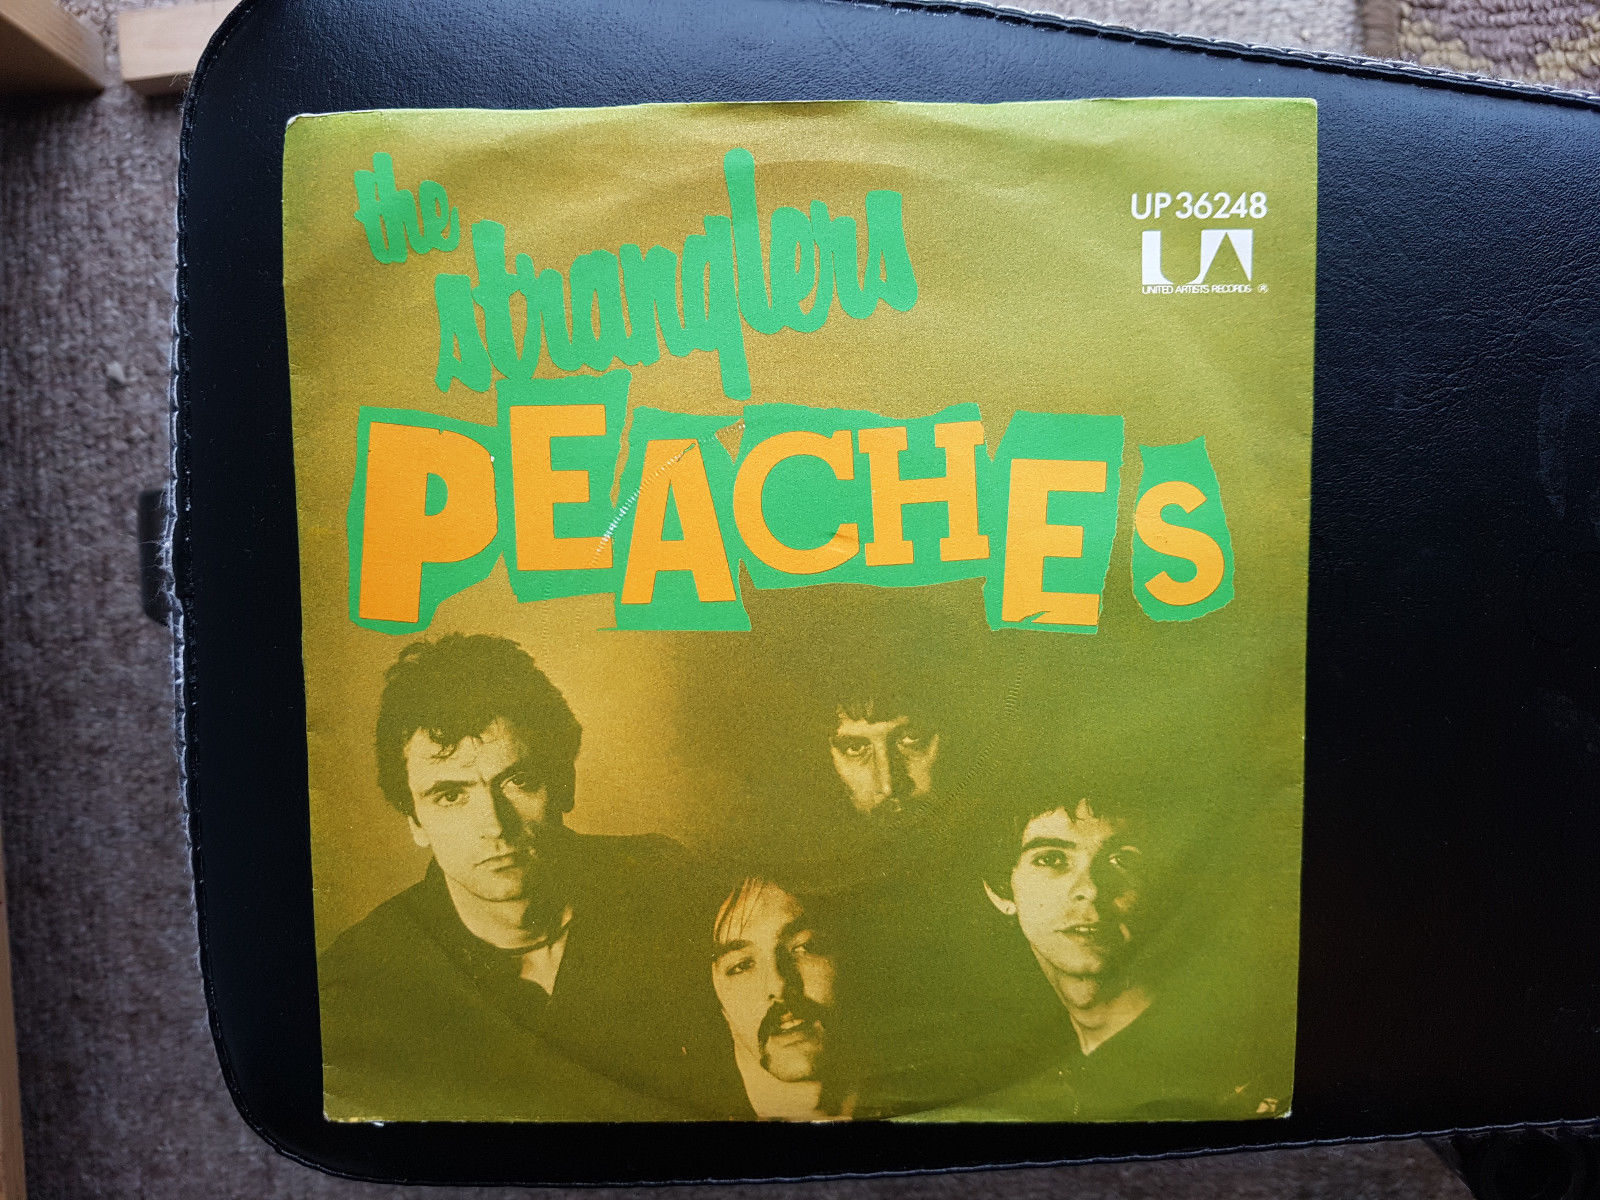 The Stranglers - Peaches Blackmail sleeve Original Promo copy Extremely rare